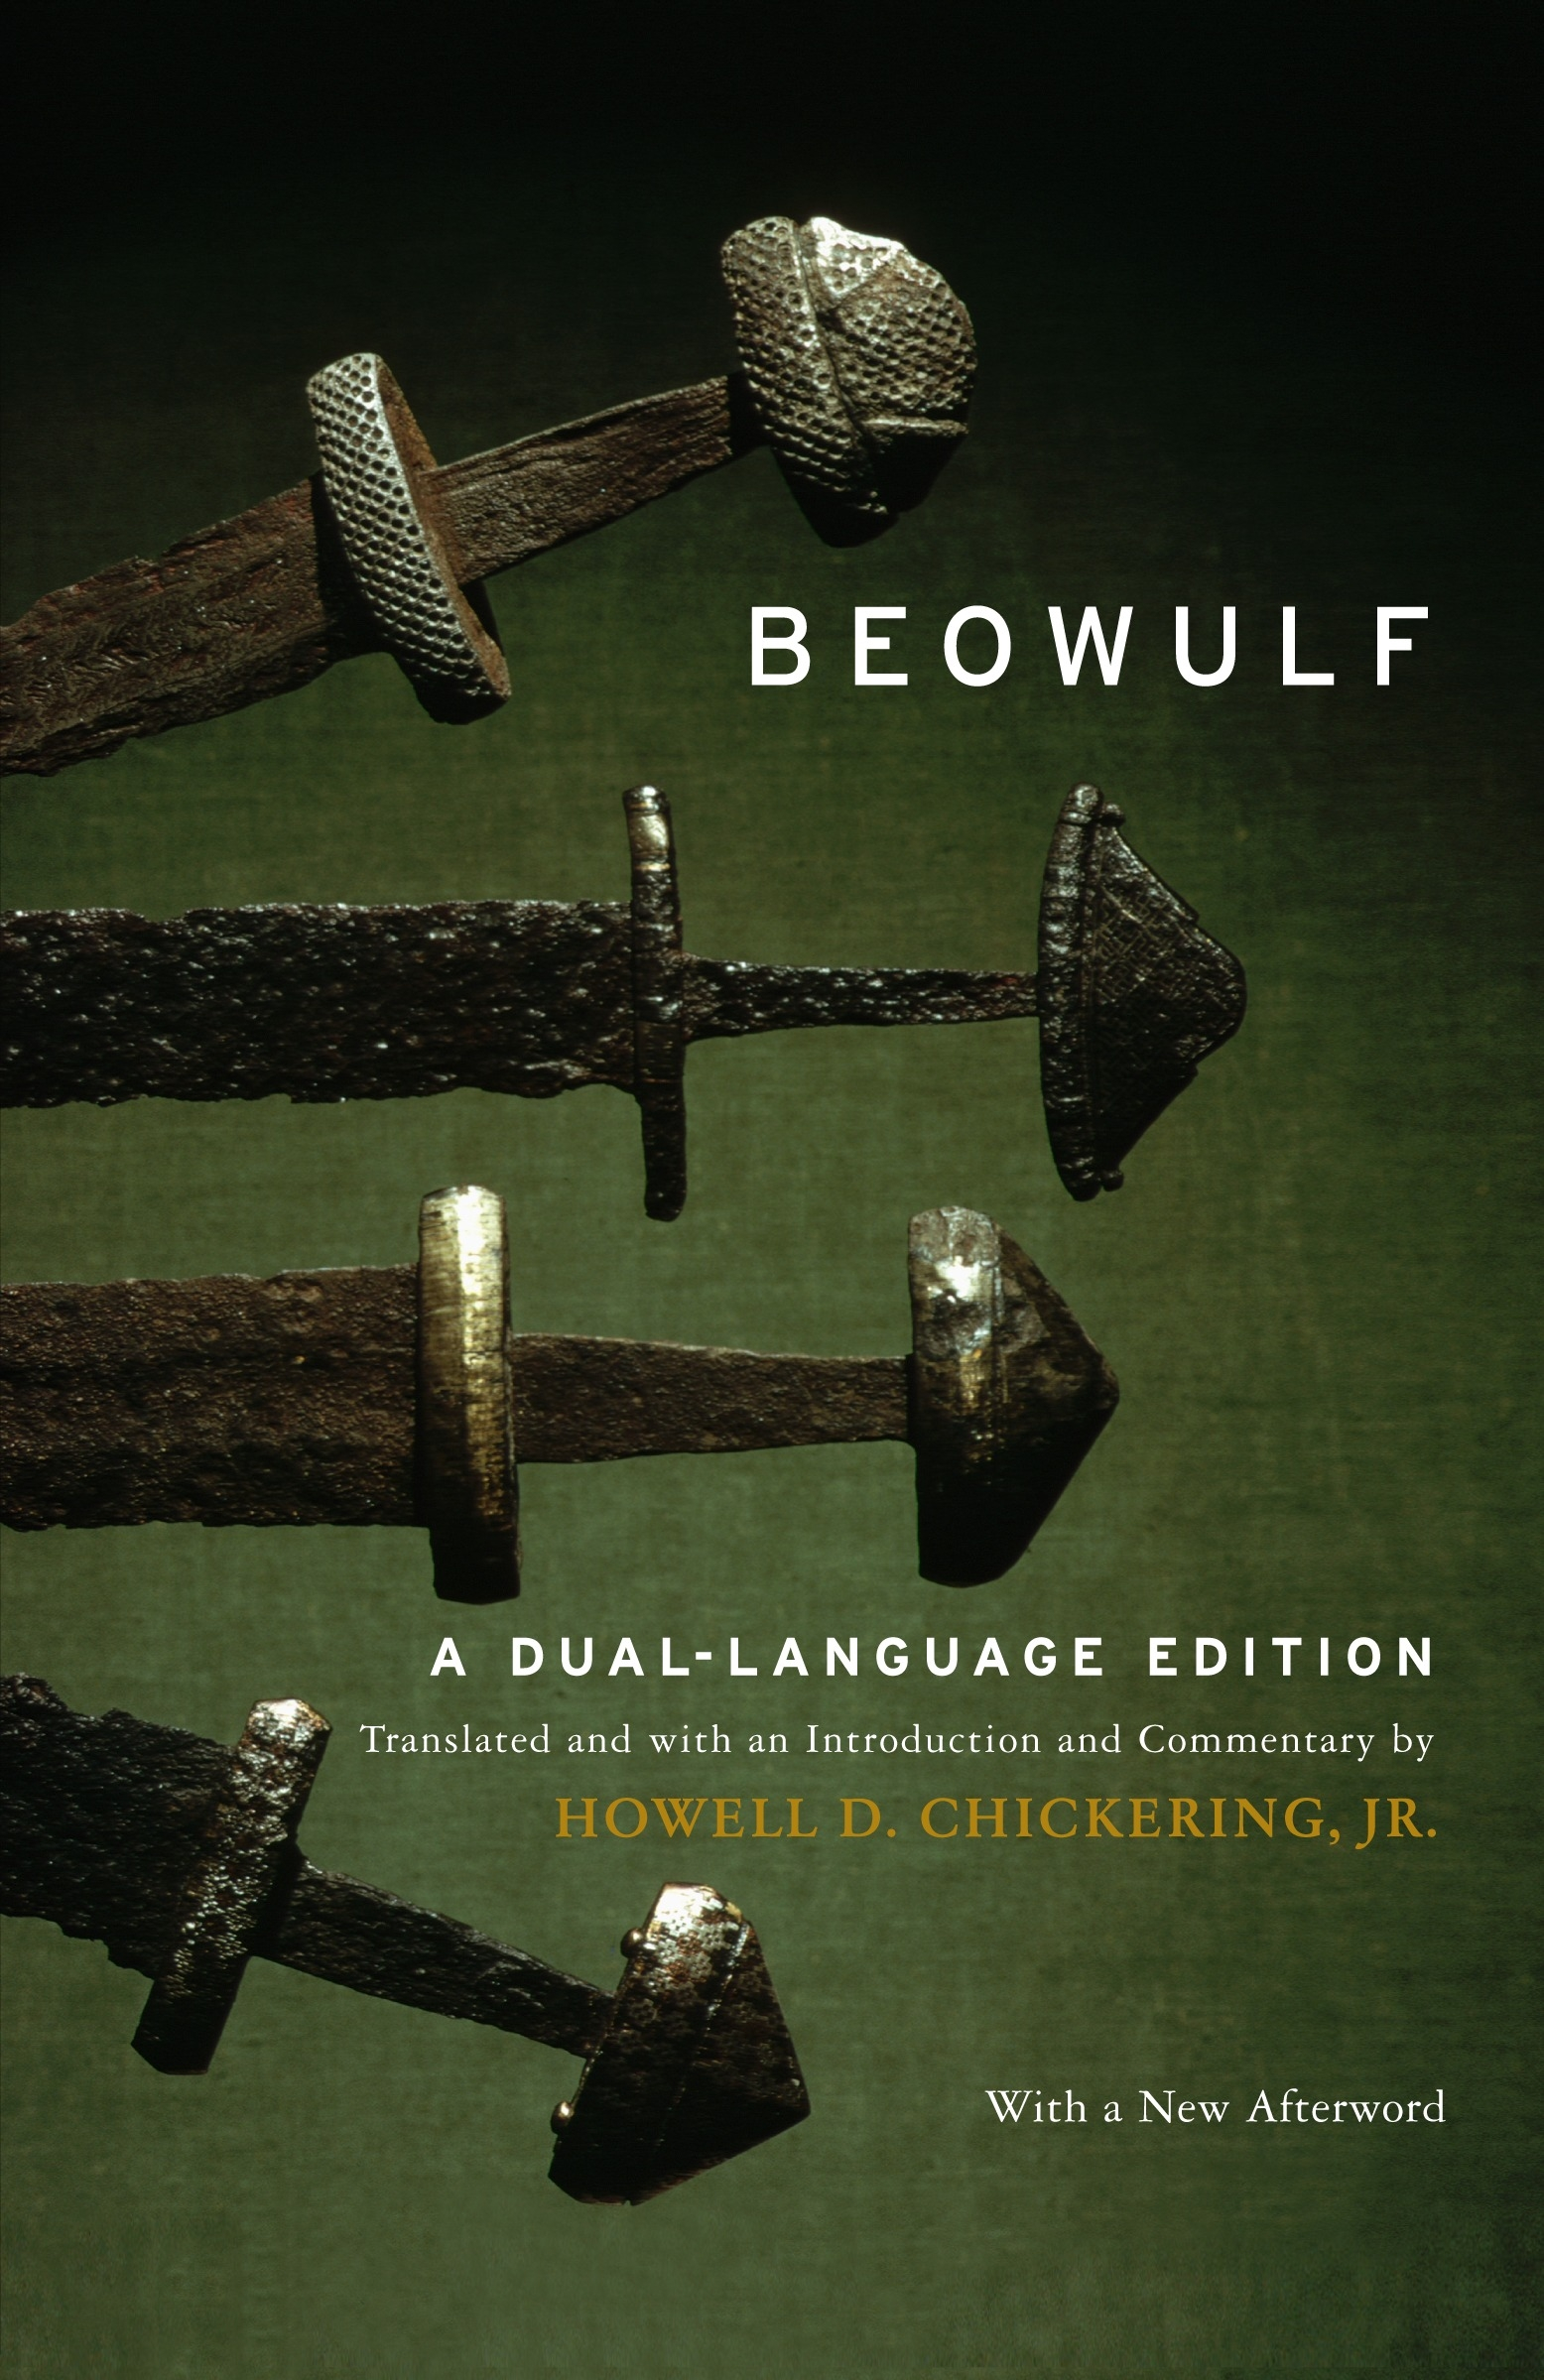 the comitatus relationship in beowulf essay 2 loyalty relationship in the poem beowulf shows great loyalty to hrothgar their comitatus relationship also turns their relationship of beowulf essay.